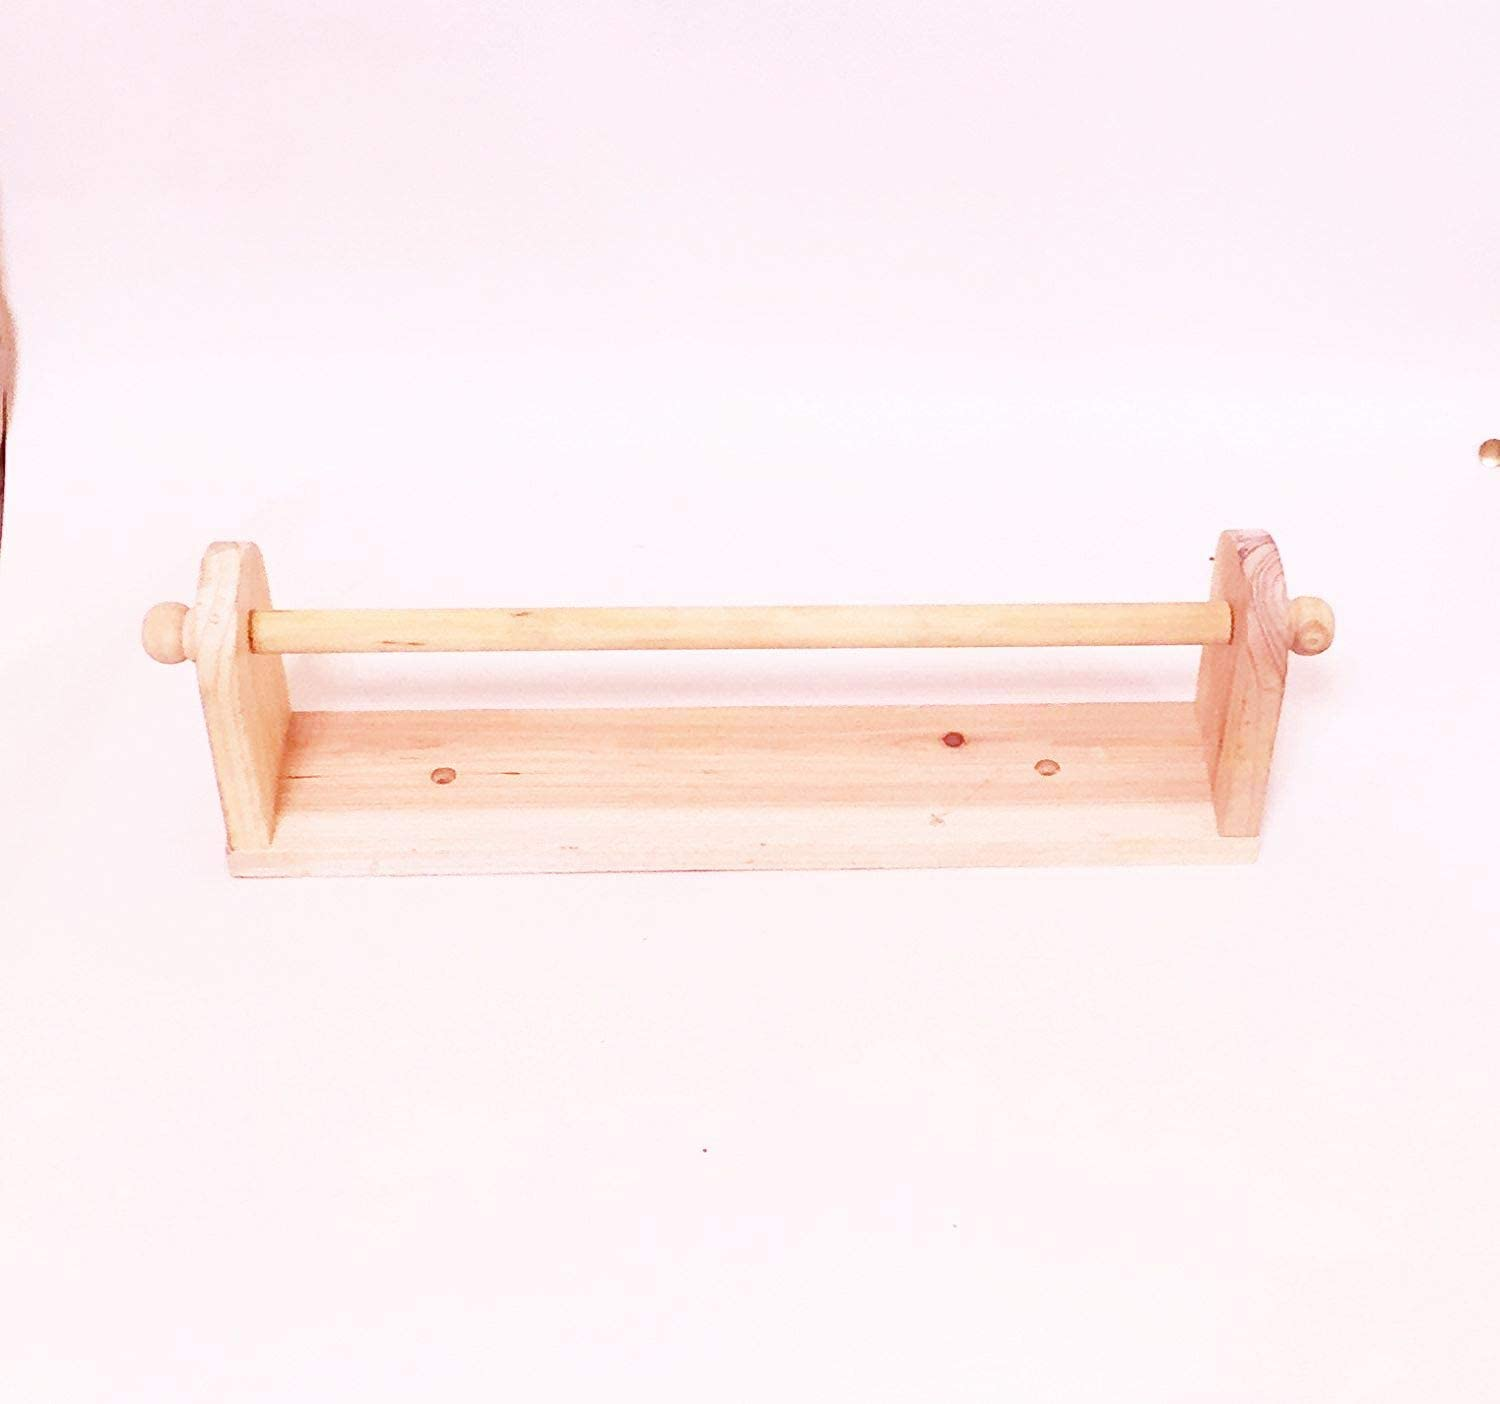 Paper Towl Holder Wall Mounted 30x6.3x10cm Pine Wood Guaranteed Quality